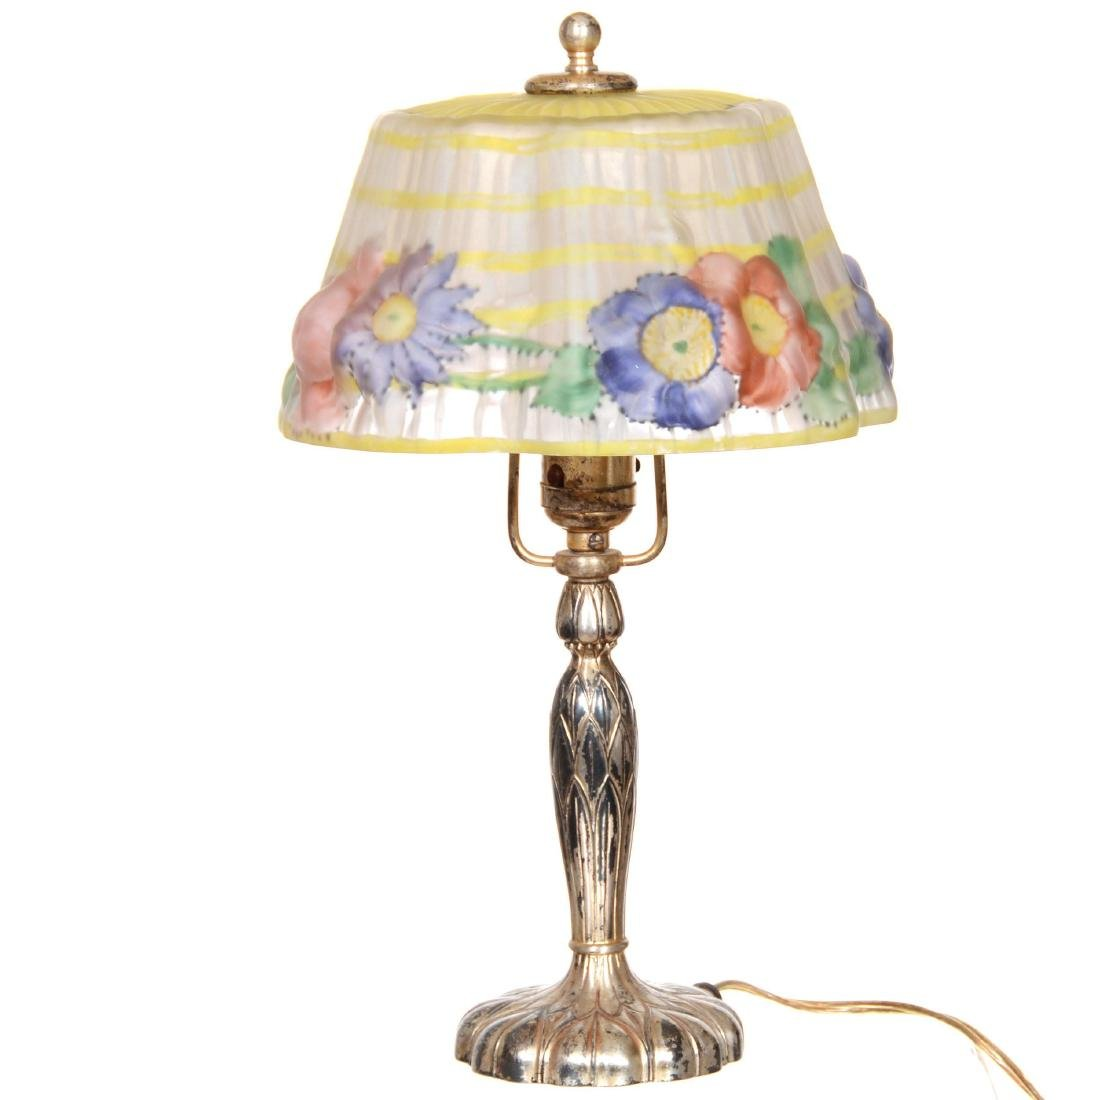 Original Pairpoint Puffy Boudoir Lamp